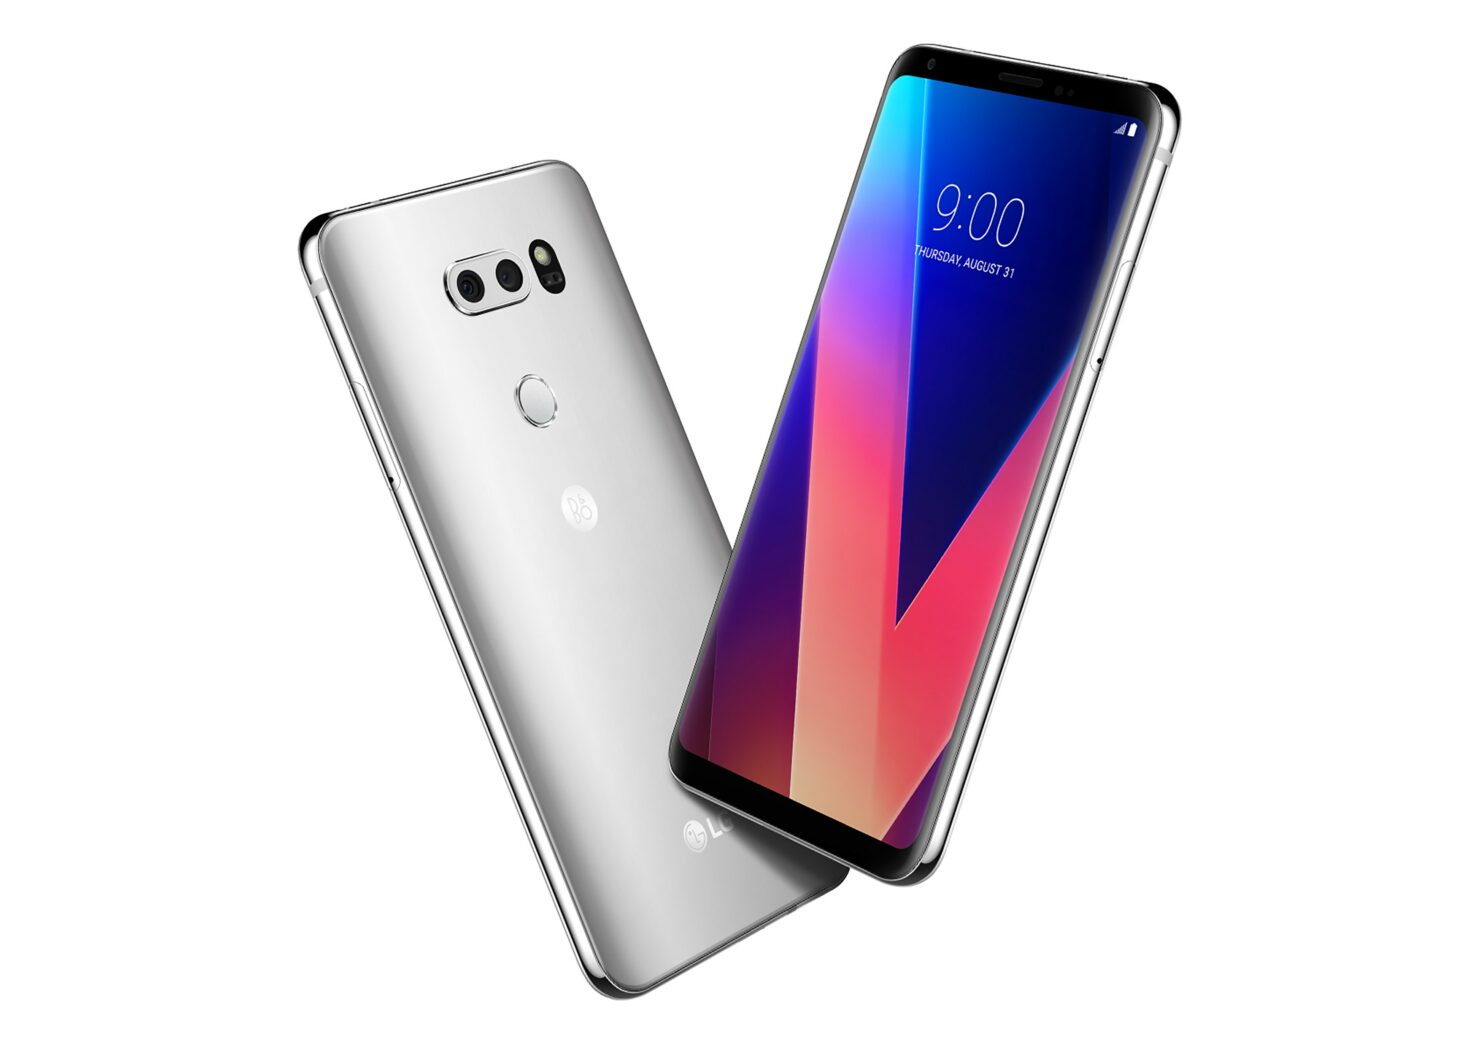 LG V30 How to Save $300 on the Purchase of the Latest Flagship